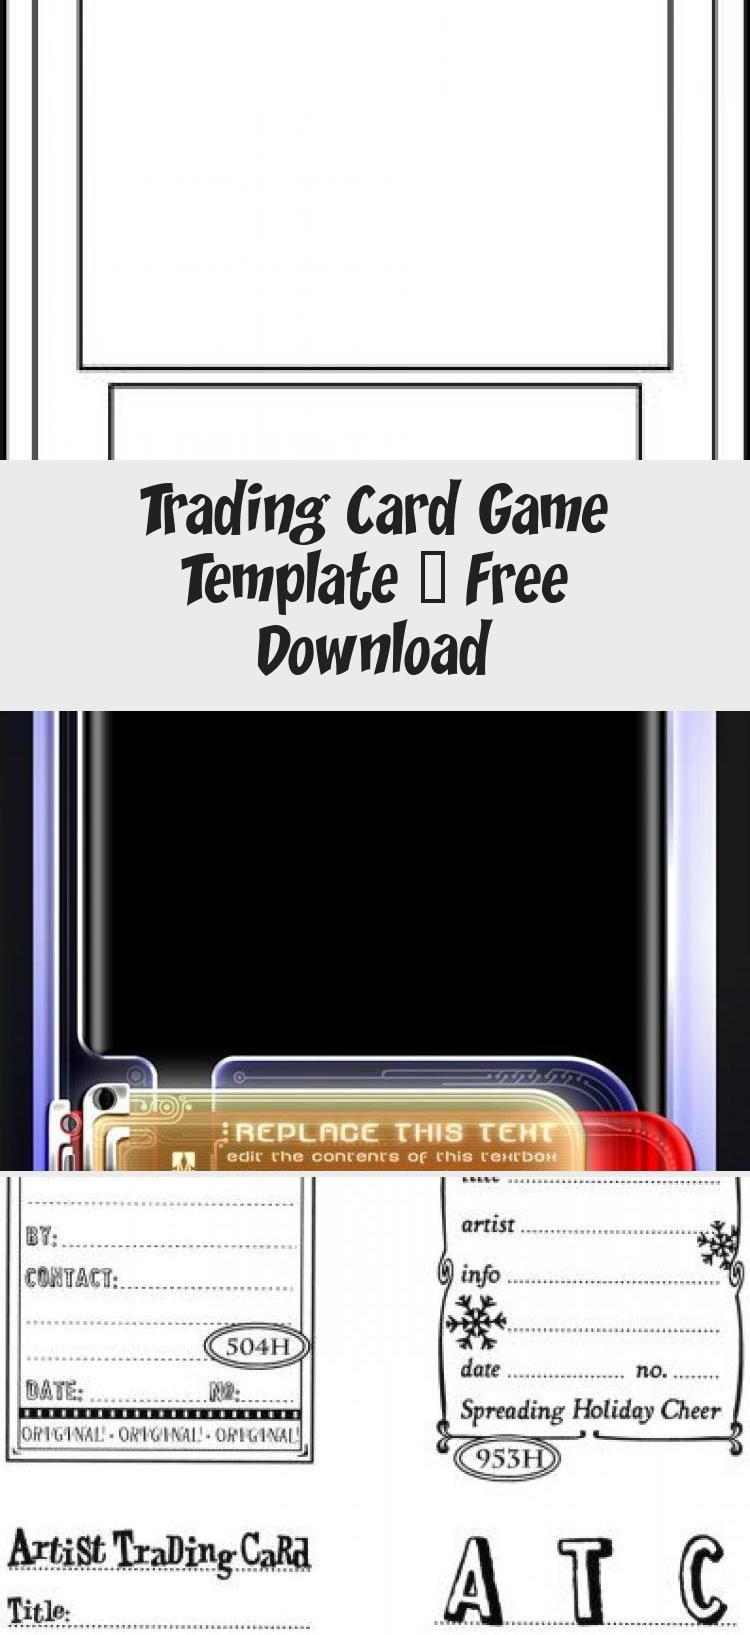 001 Formidable Trading Card Template Free Concept  Maker OnlineFull